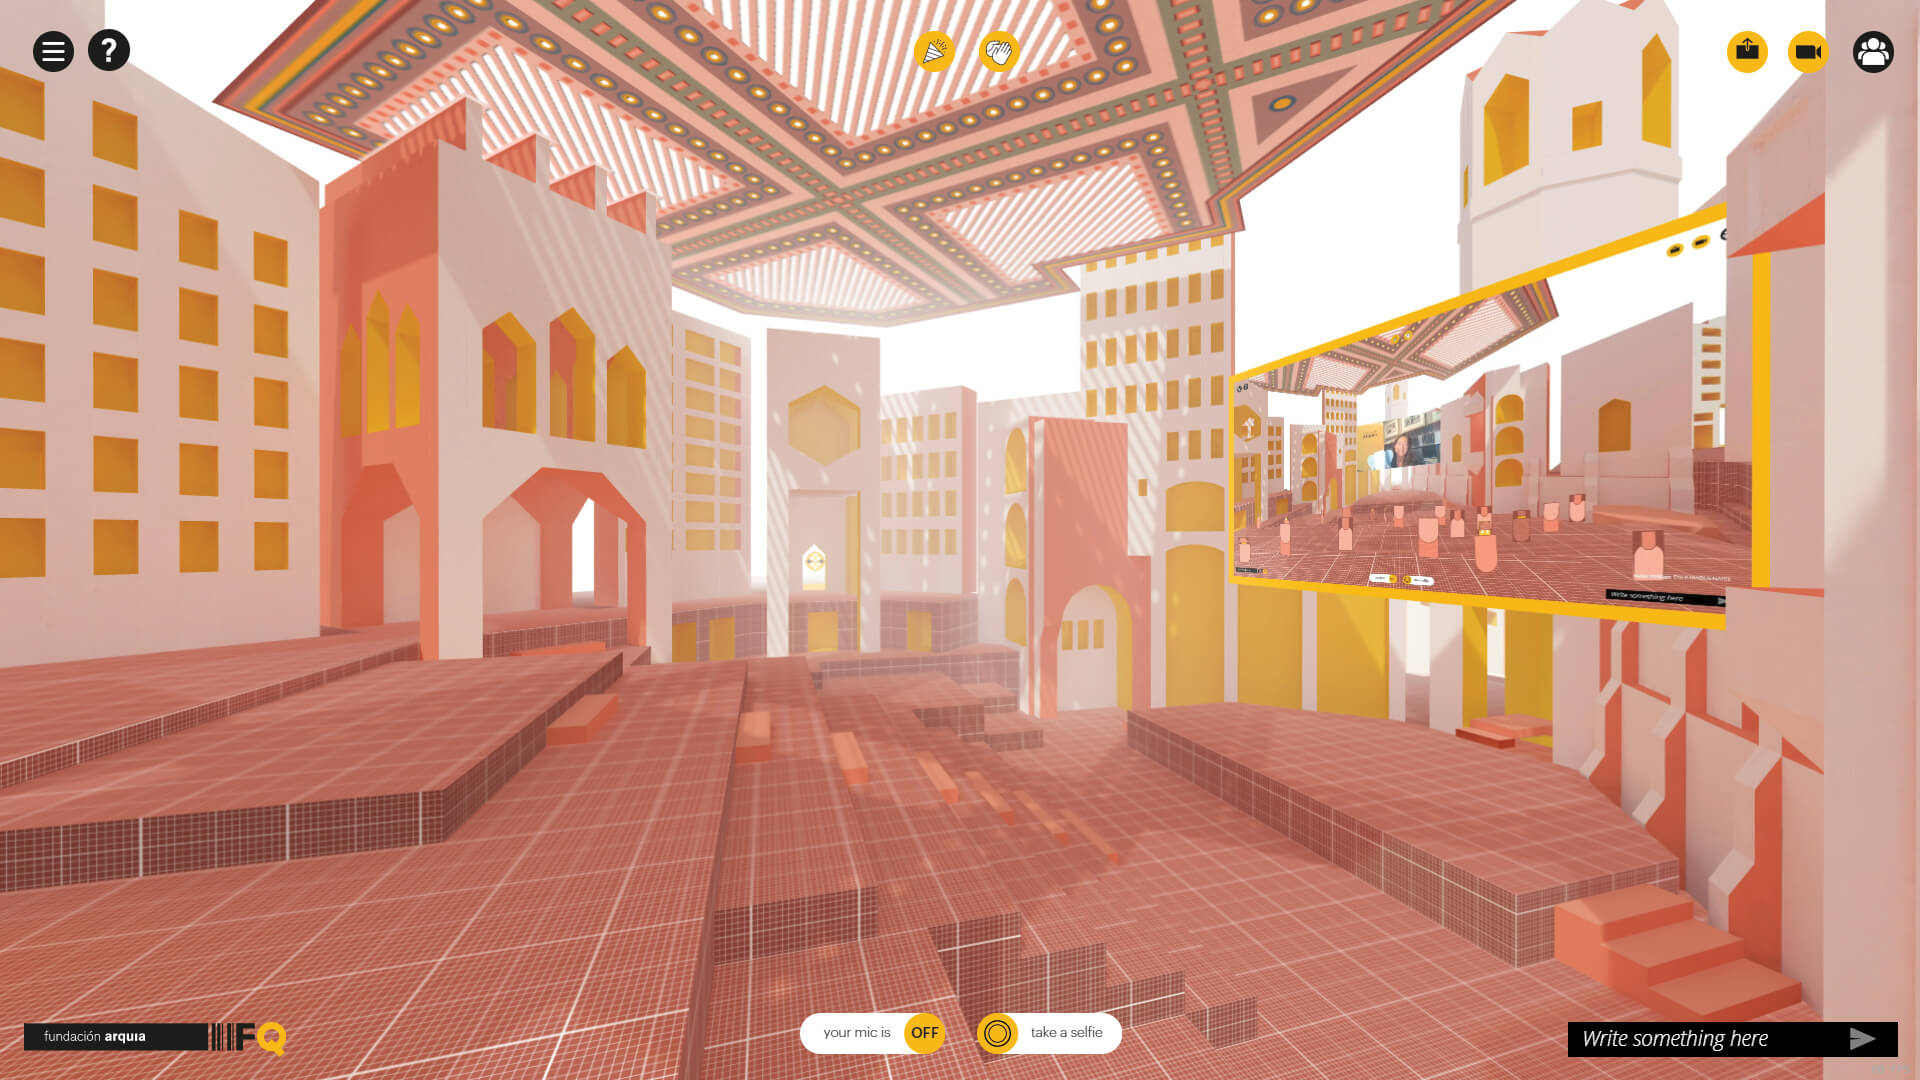 An architectural conference in VR by Space Popular reflects virtual togetherness